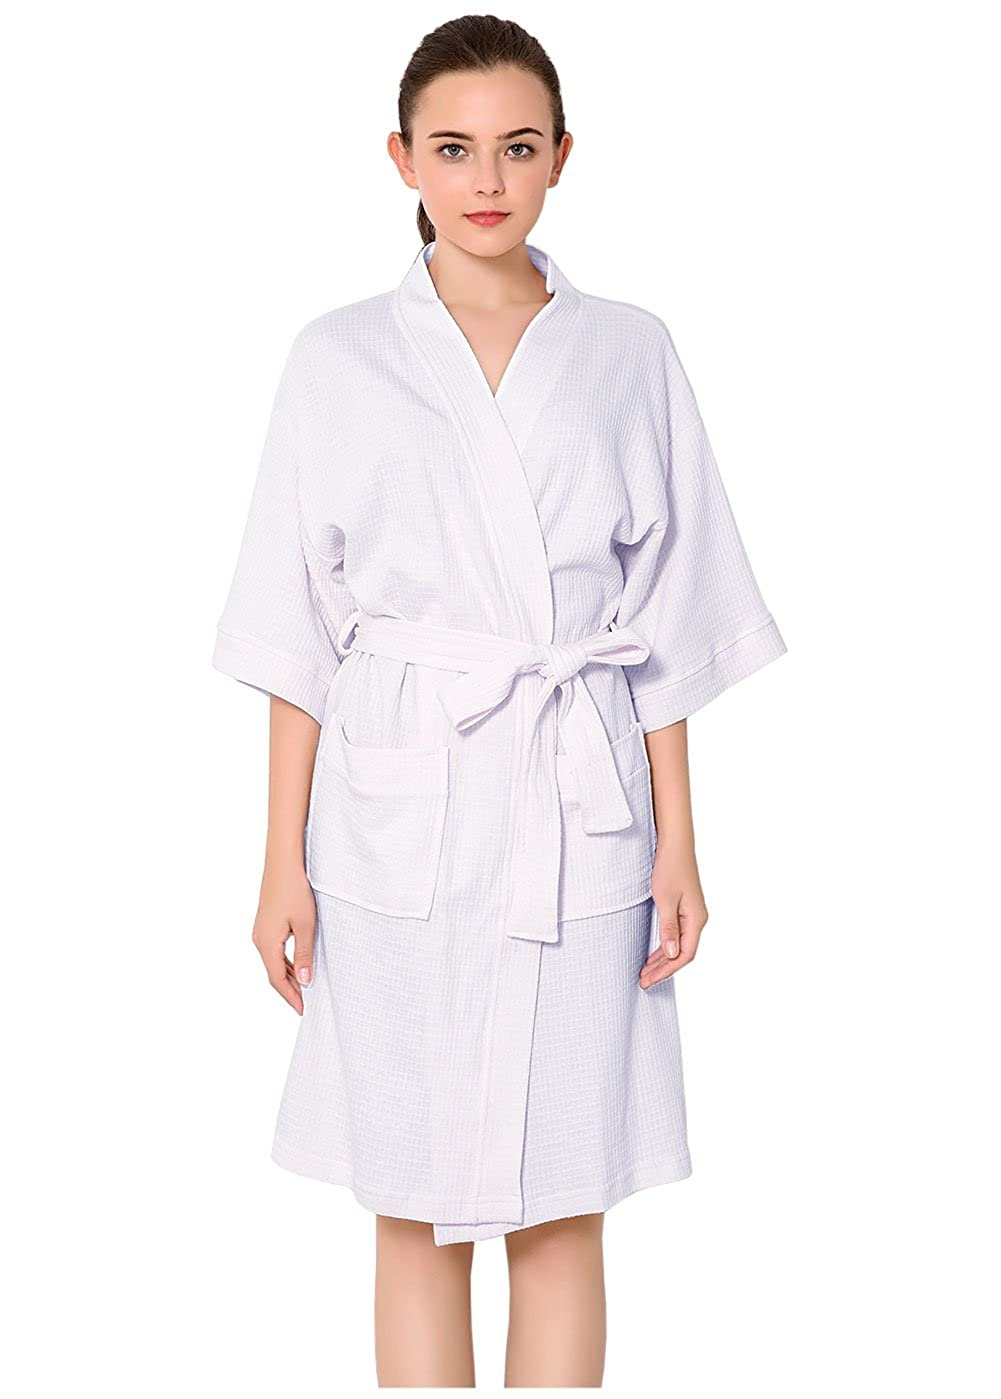 Women Cotton Bathrobe S M  L XL Waffle Weave Dressing Gown Purple Grey  White Sleepwear Kimono Lightweight Night Robe Spa Hotel Housing Robe ... 6f22e182d